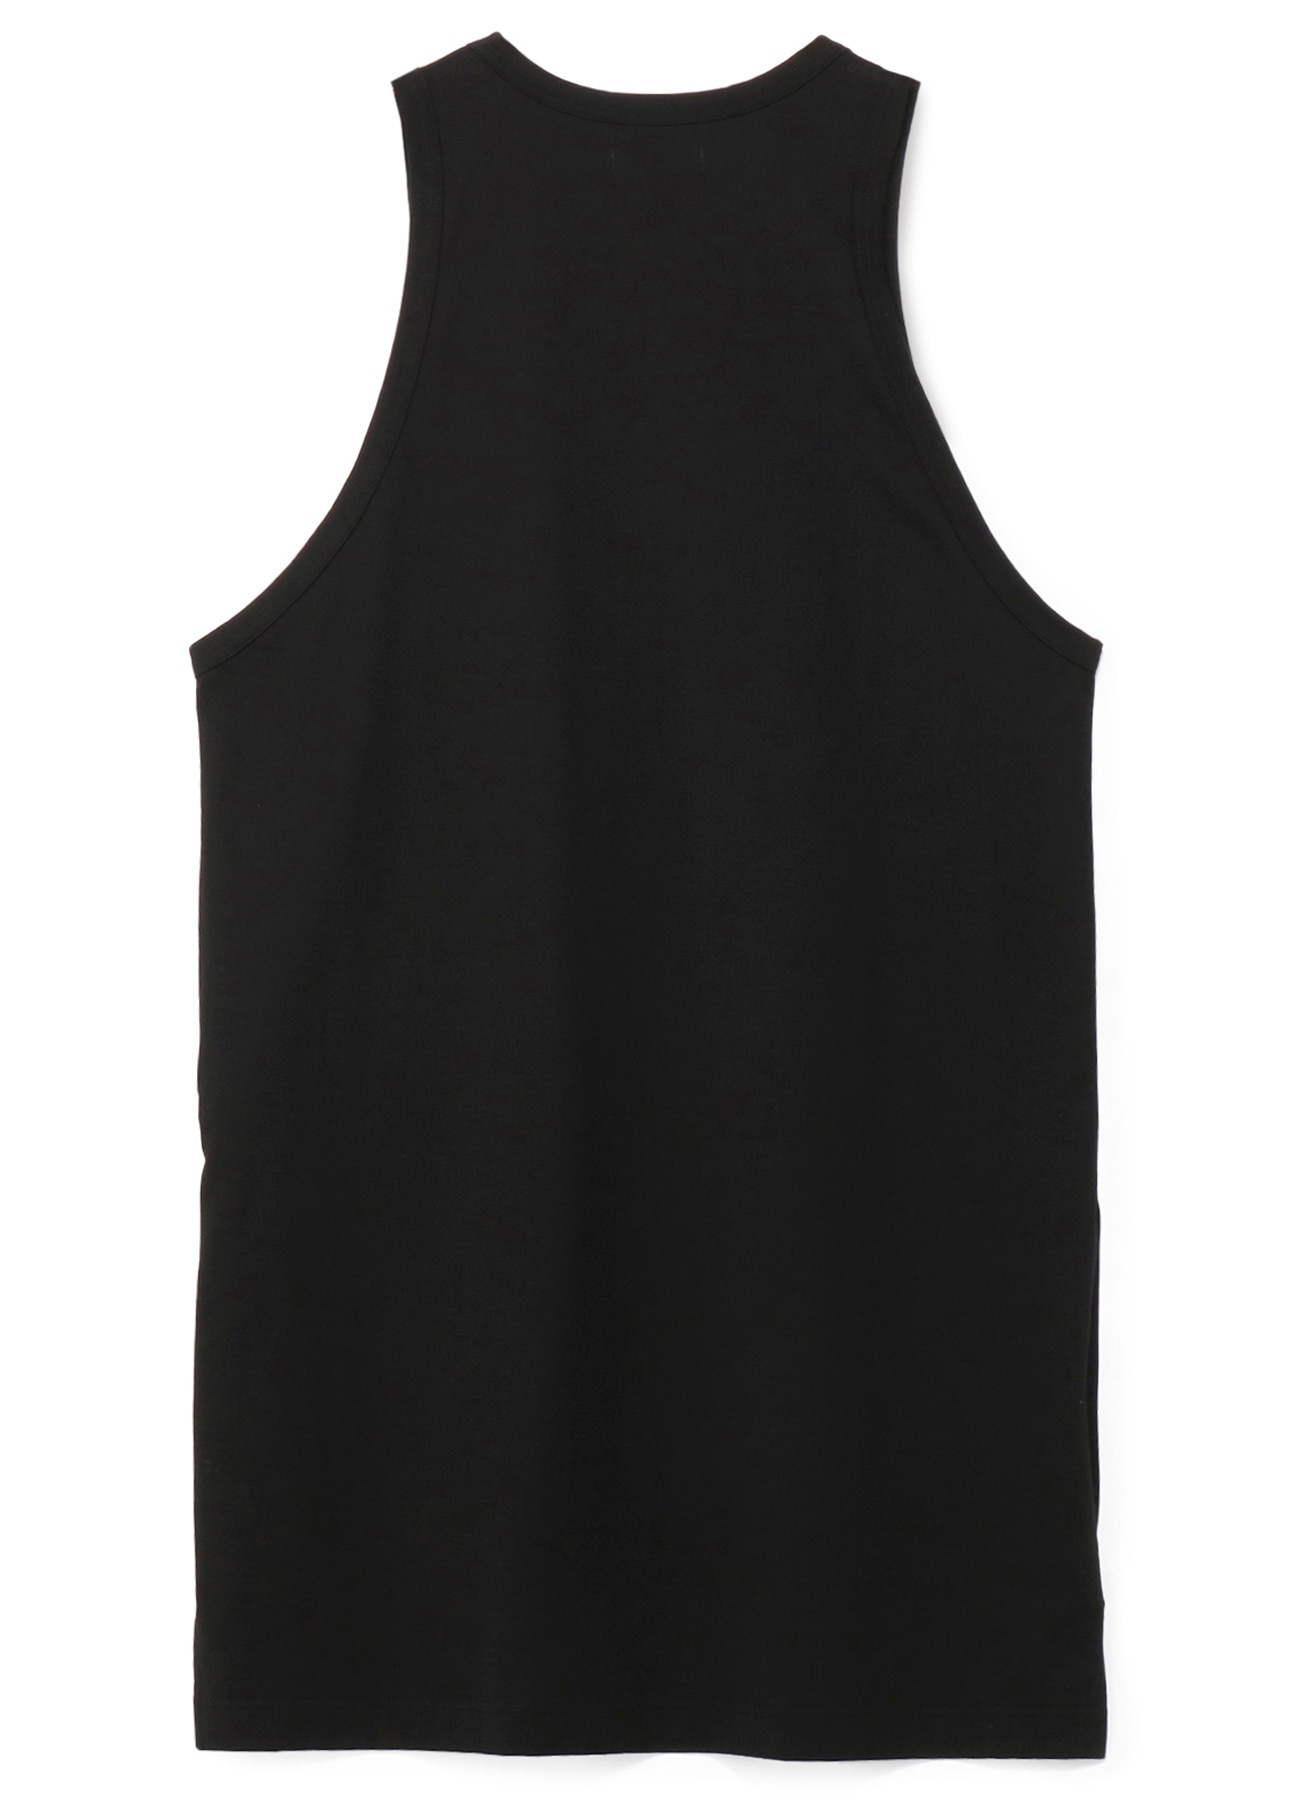 40/2 Cotton Jersey Long Big Tank Top